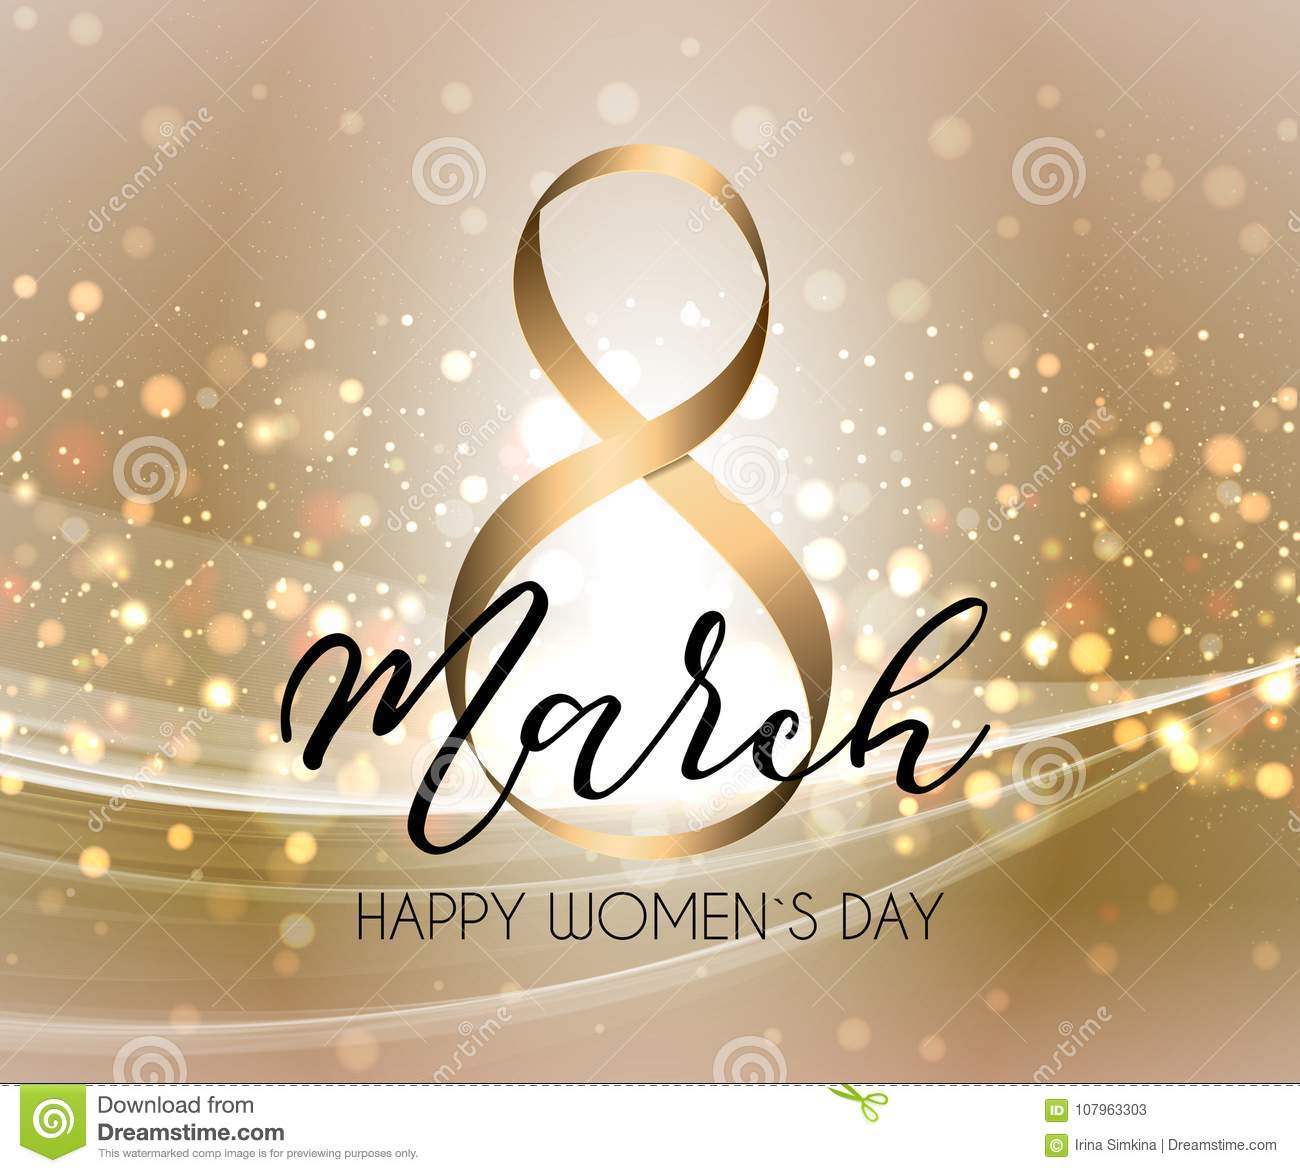 March 8 greeting card. Background template for International Womens Day.